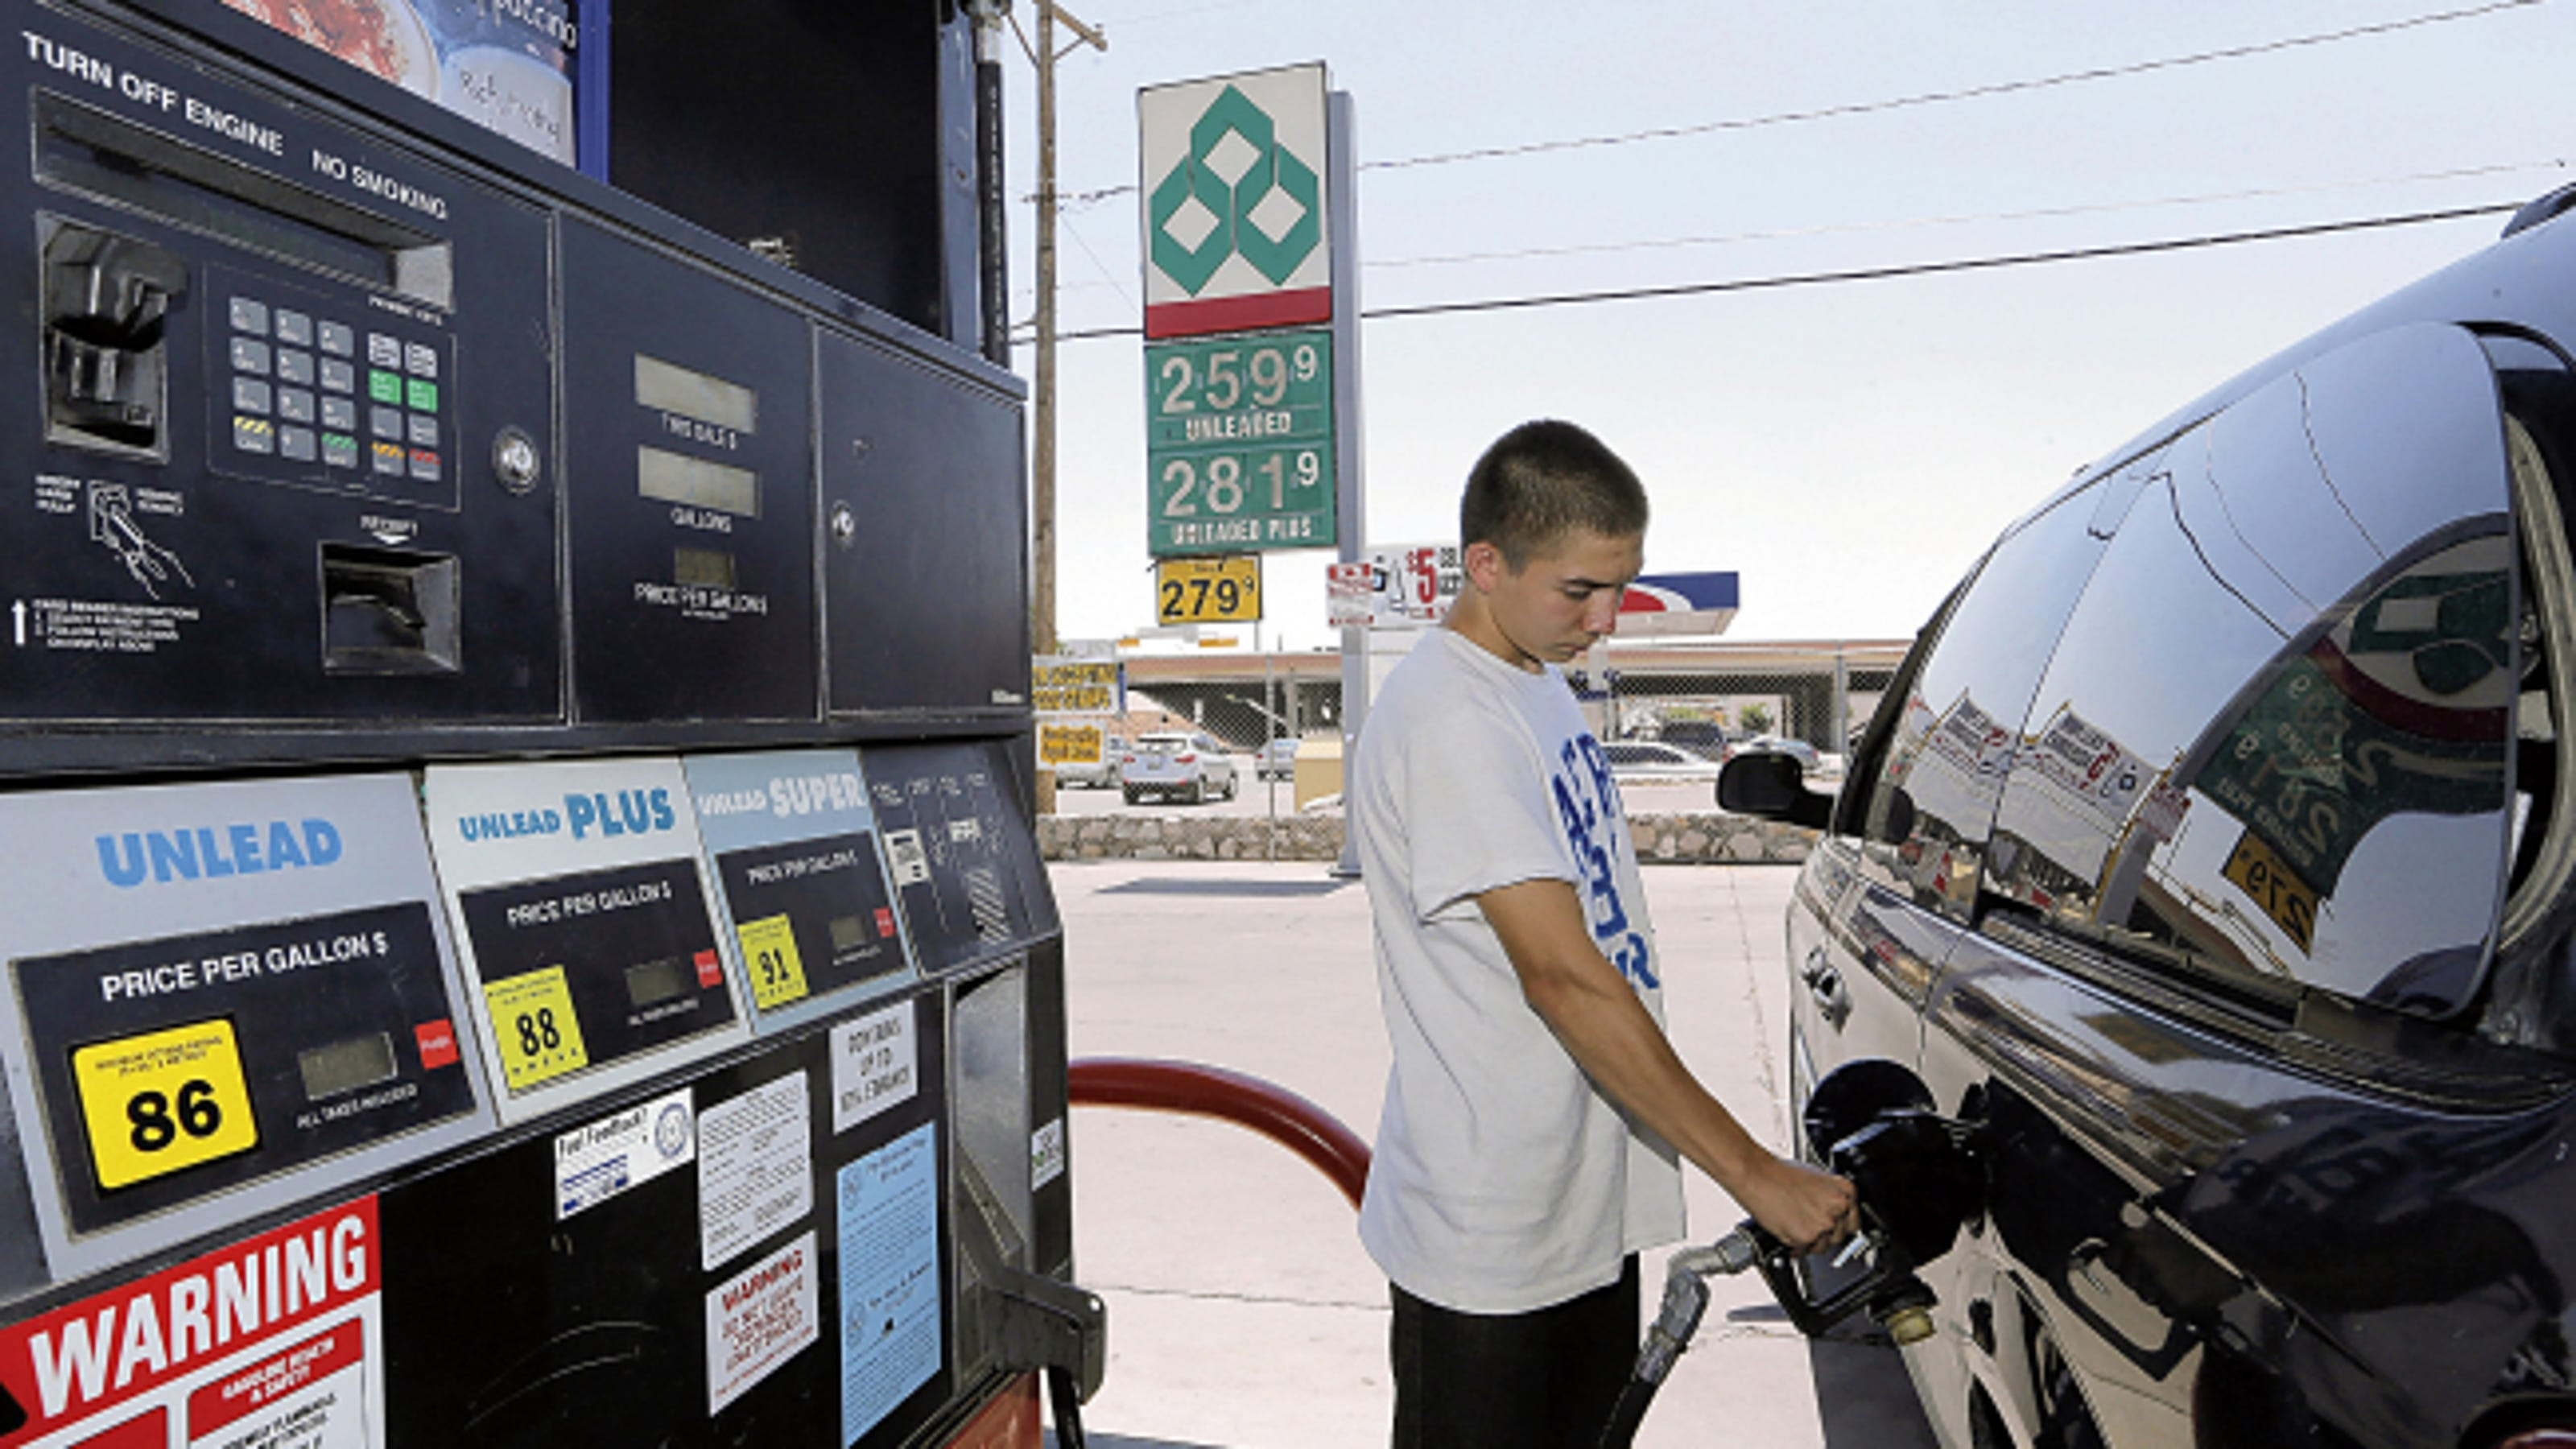 Analyst El Paso Gas Prices To Drop To 2 By Christmas